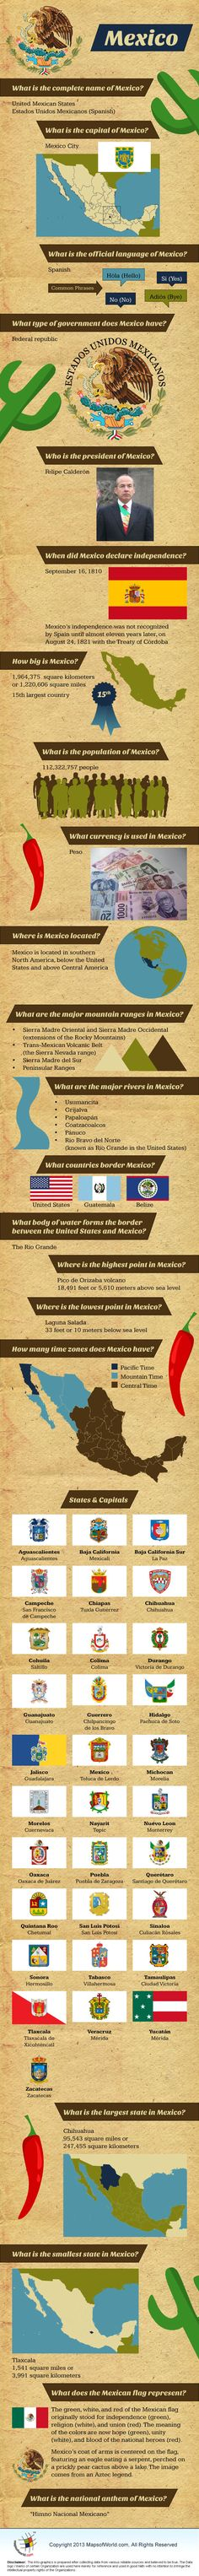 #Infographic FAST FACTS ABOUT MEXICO #Mexico